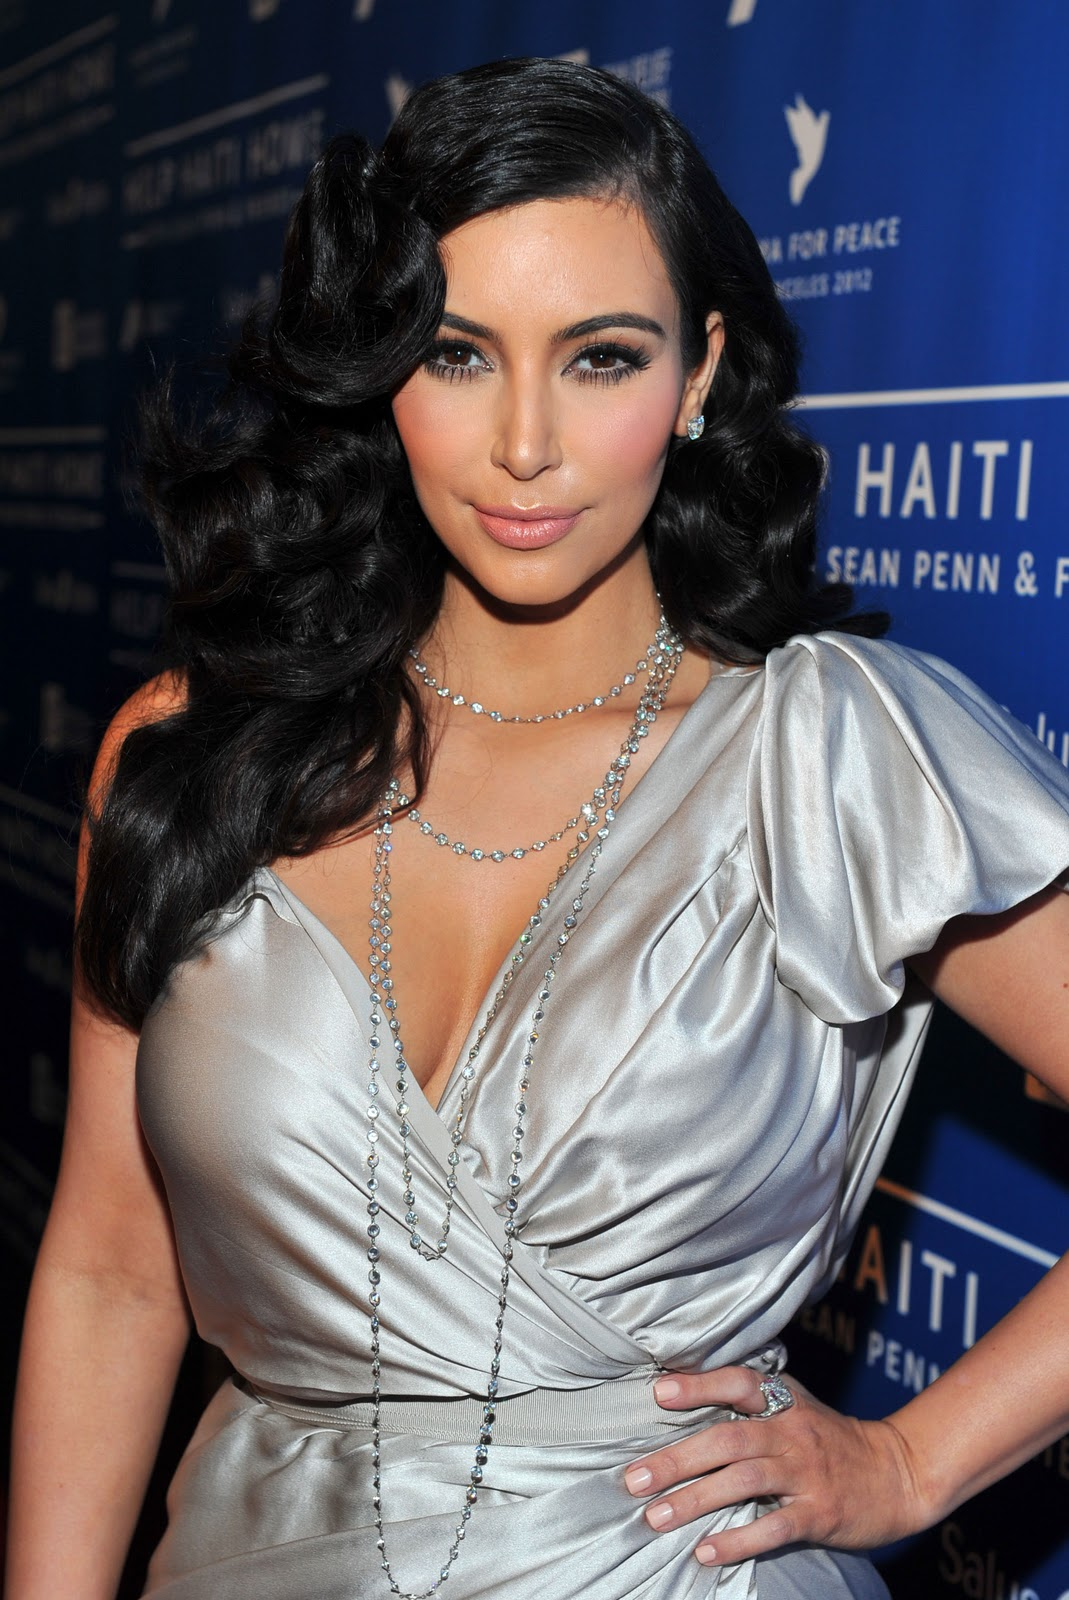 KIM-KARDASHIAN-DRESS-FASHION-SHOW-2012-1